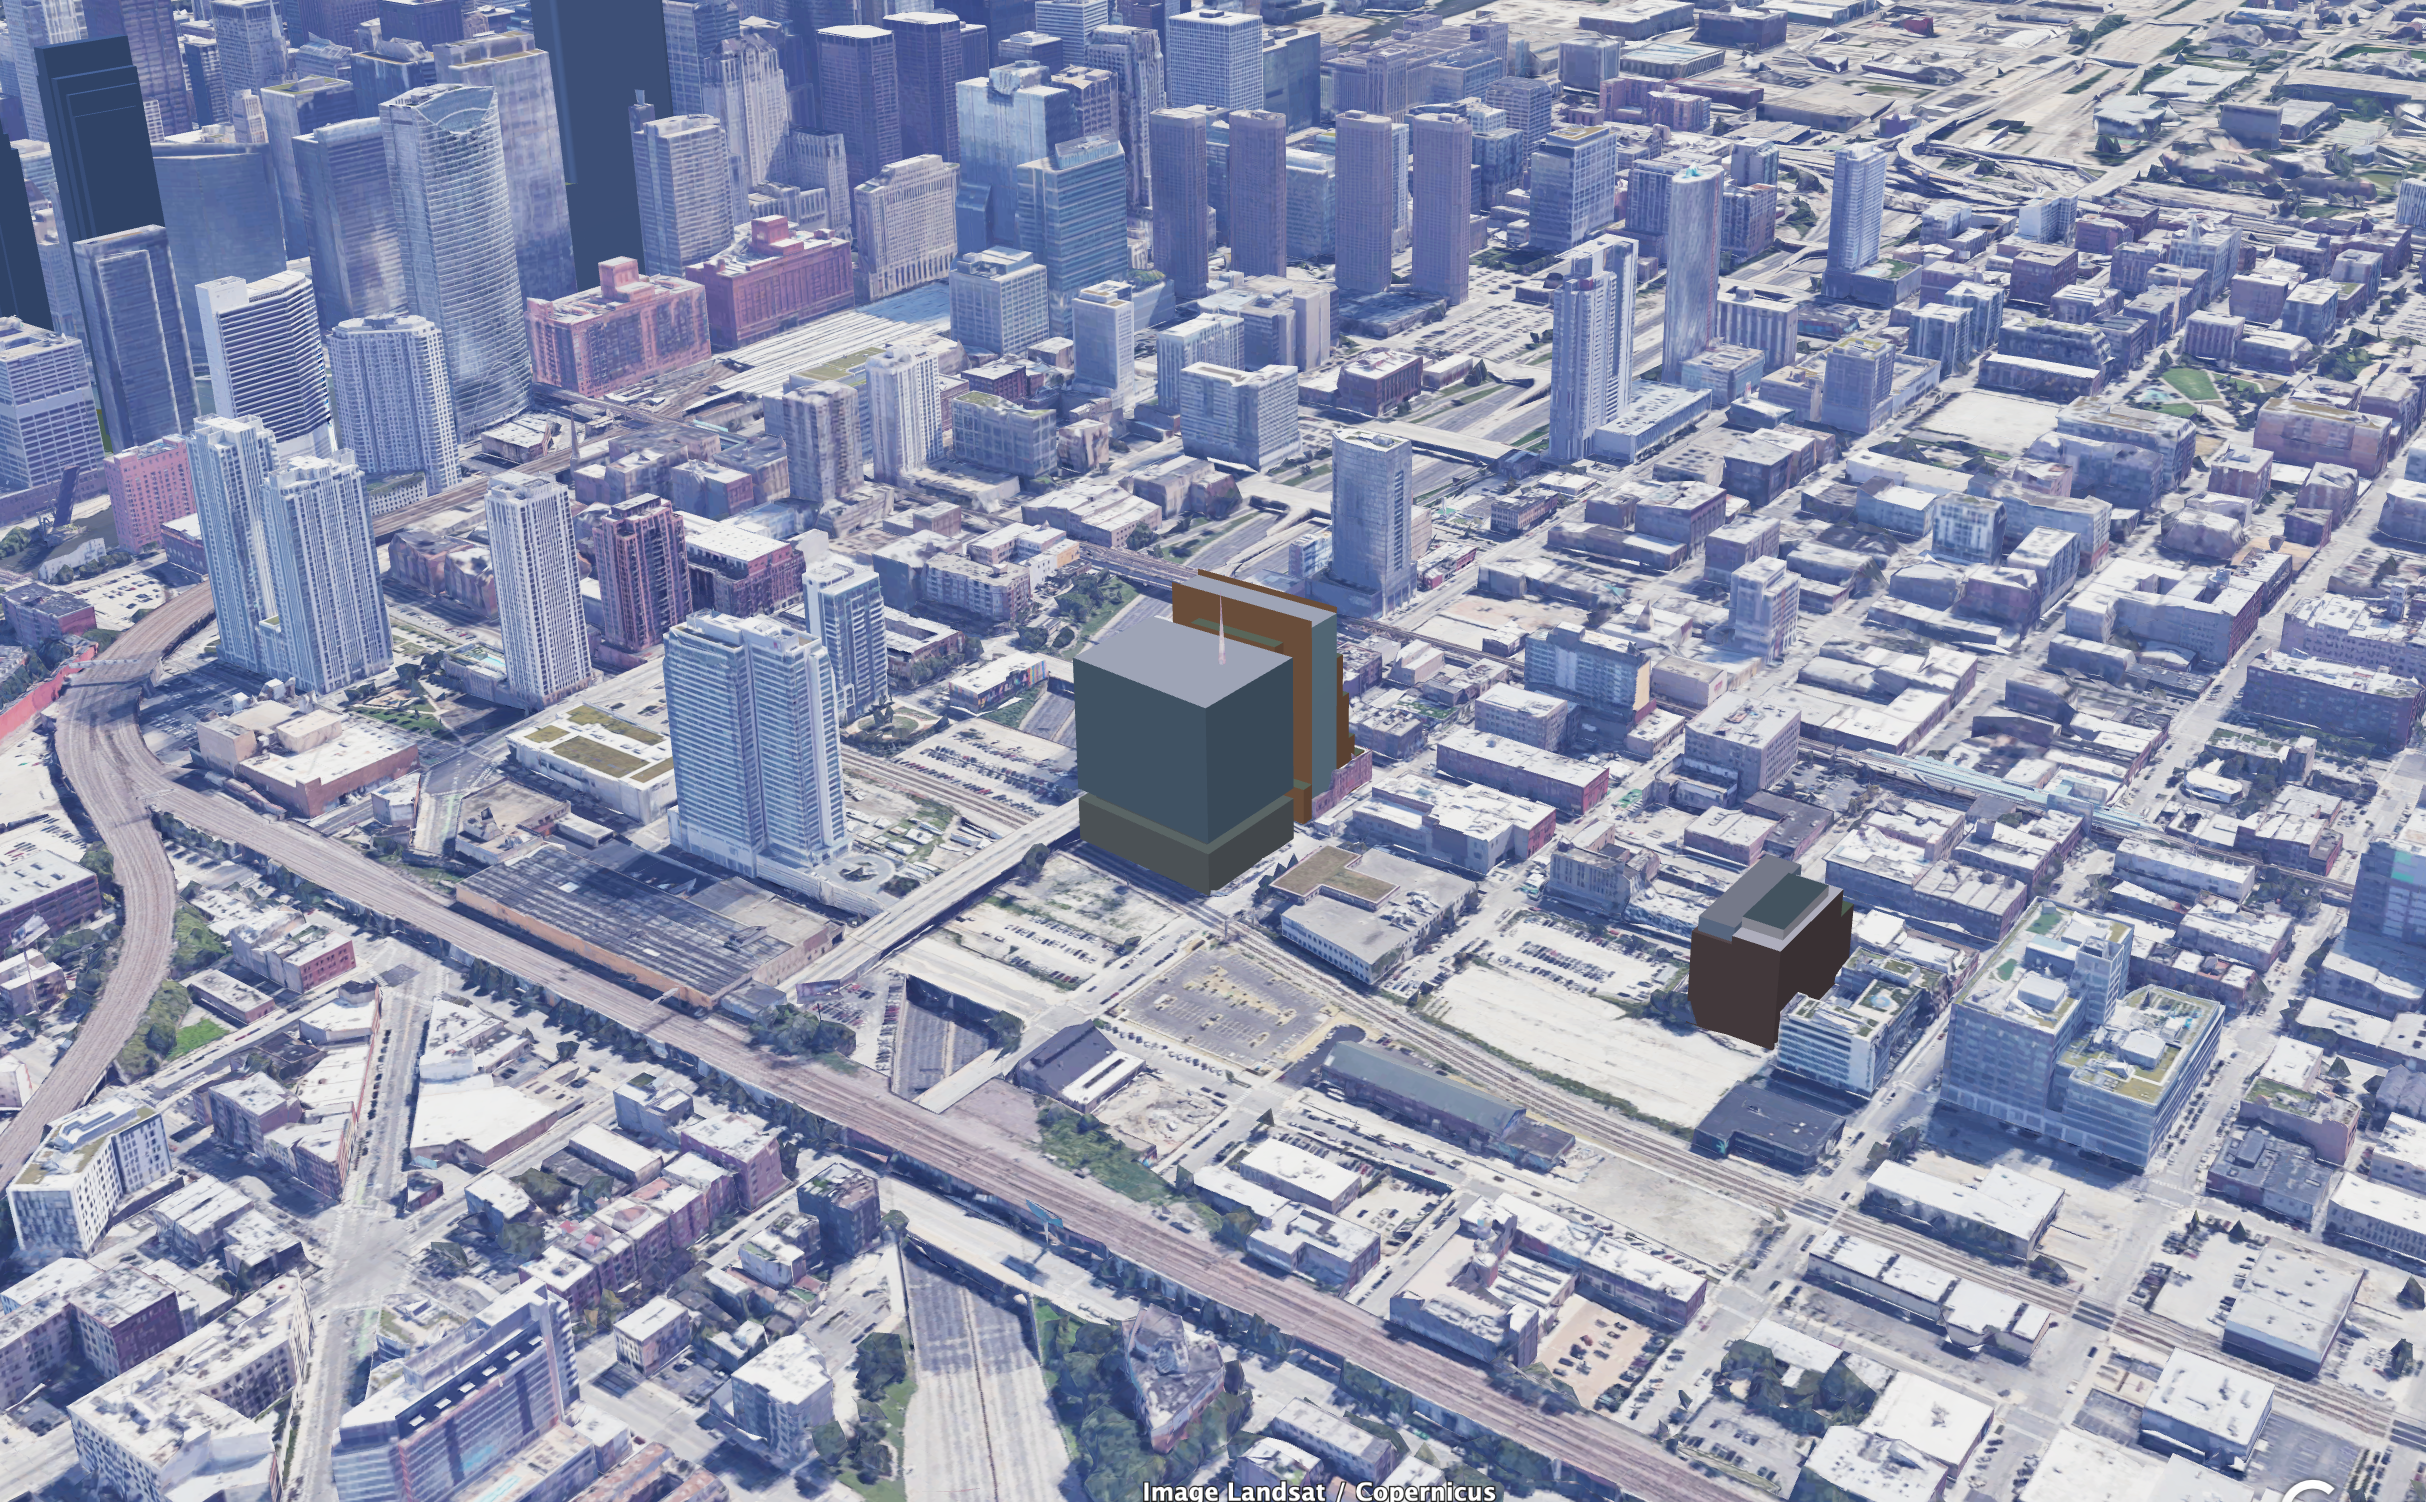 Massing models of 333 N Green Street (center left), 800 W Fulton Market (behind 333 N Green), and 320 N Sangamon Street (right)